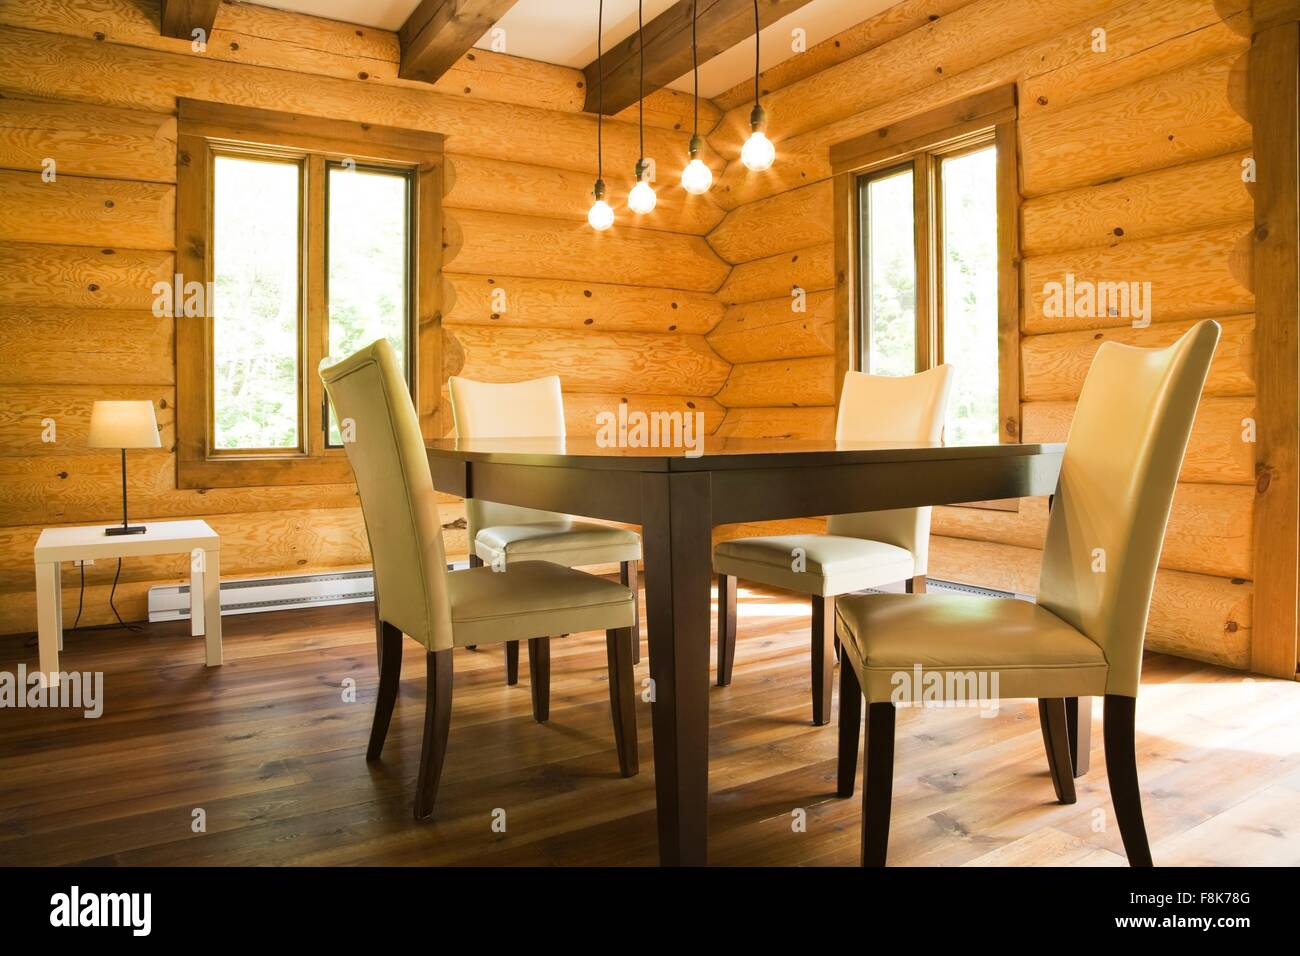 Dining table and chairs with modern lighting in Eastern white pine log cabin - Stock Image